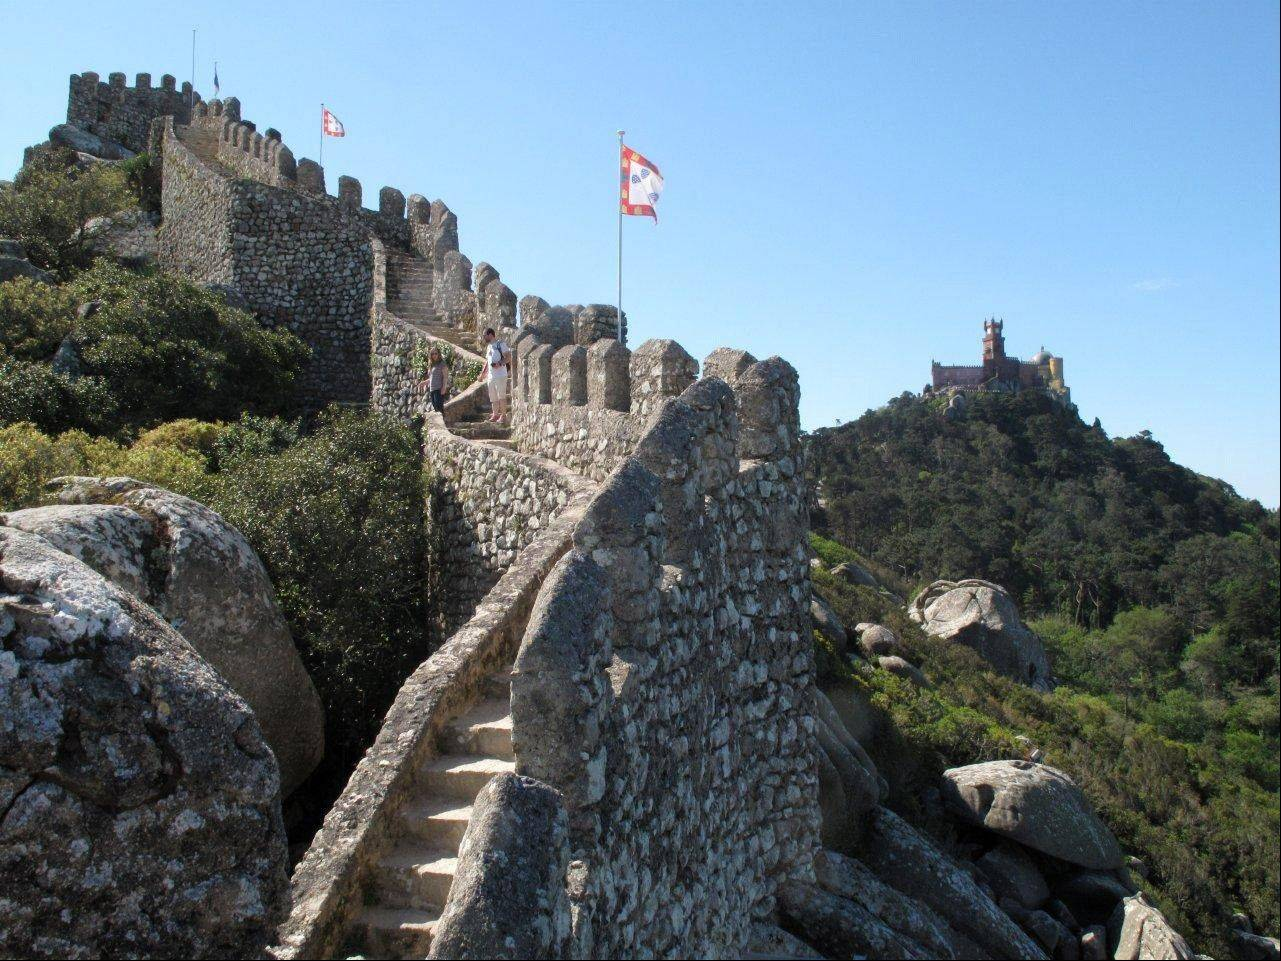 Pena Palace in the distance with the steps of the Moorish Castle in the foreground in Sintra, Portugal.